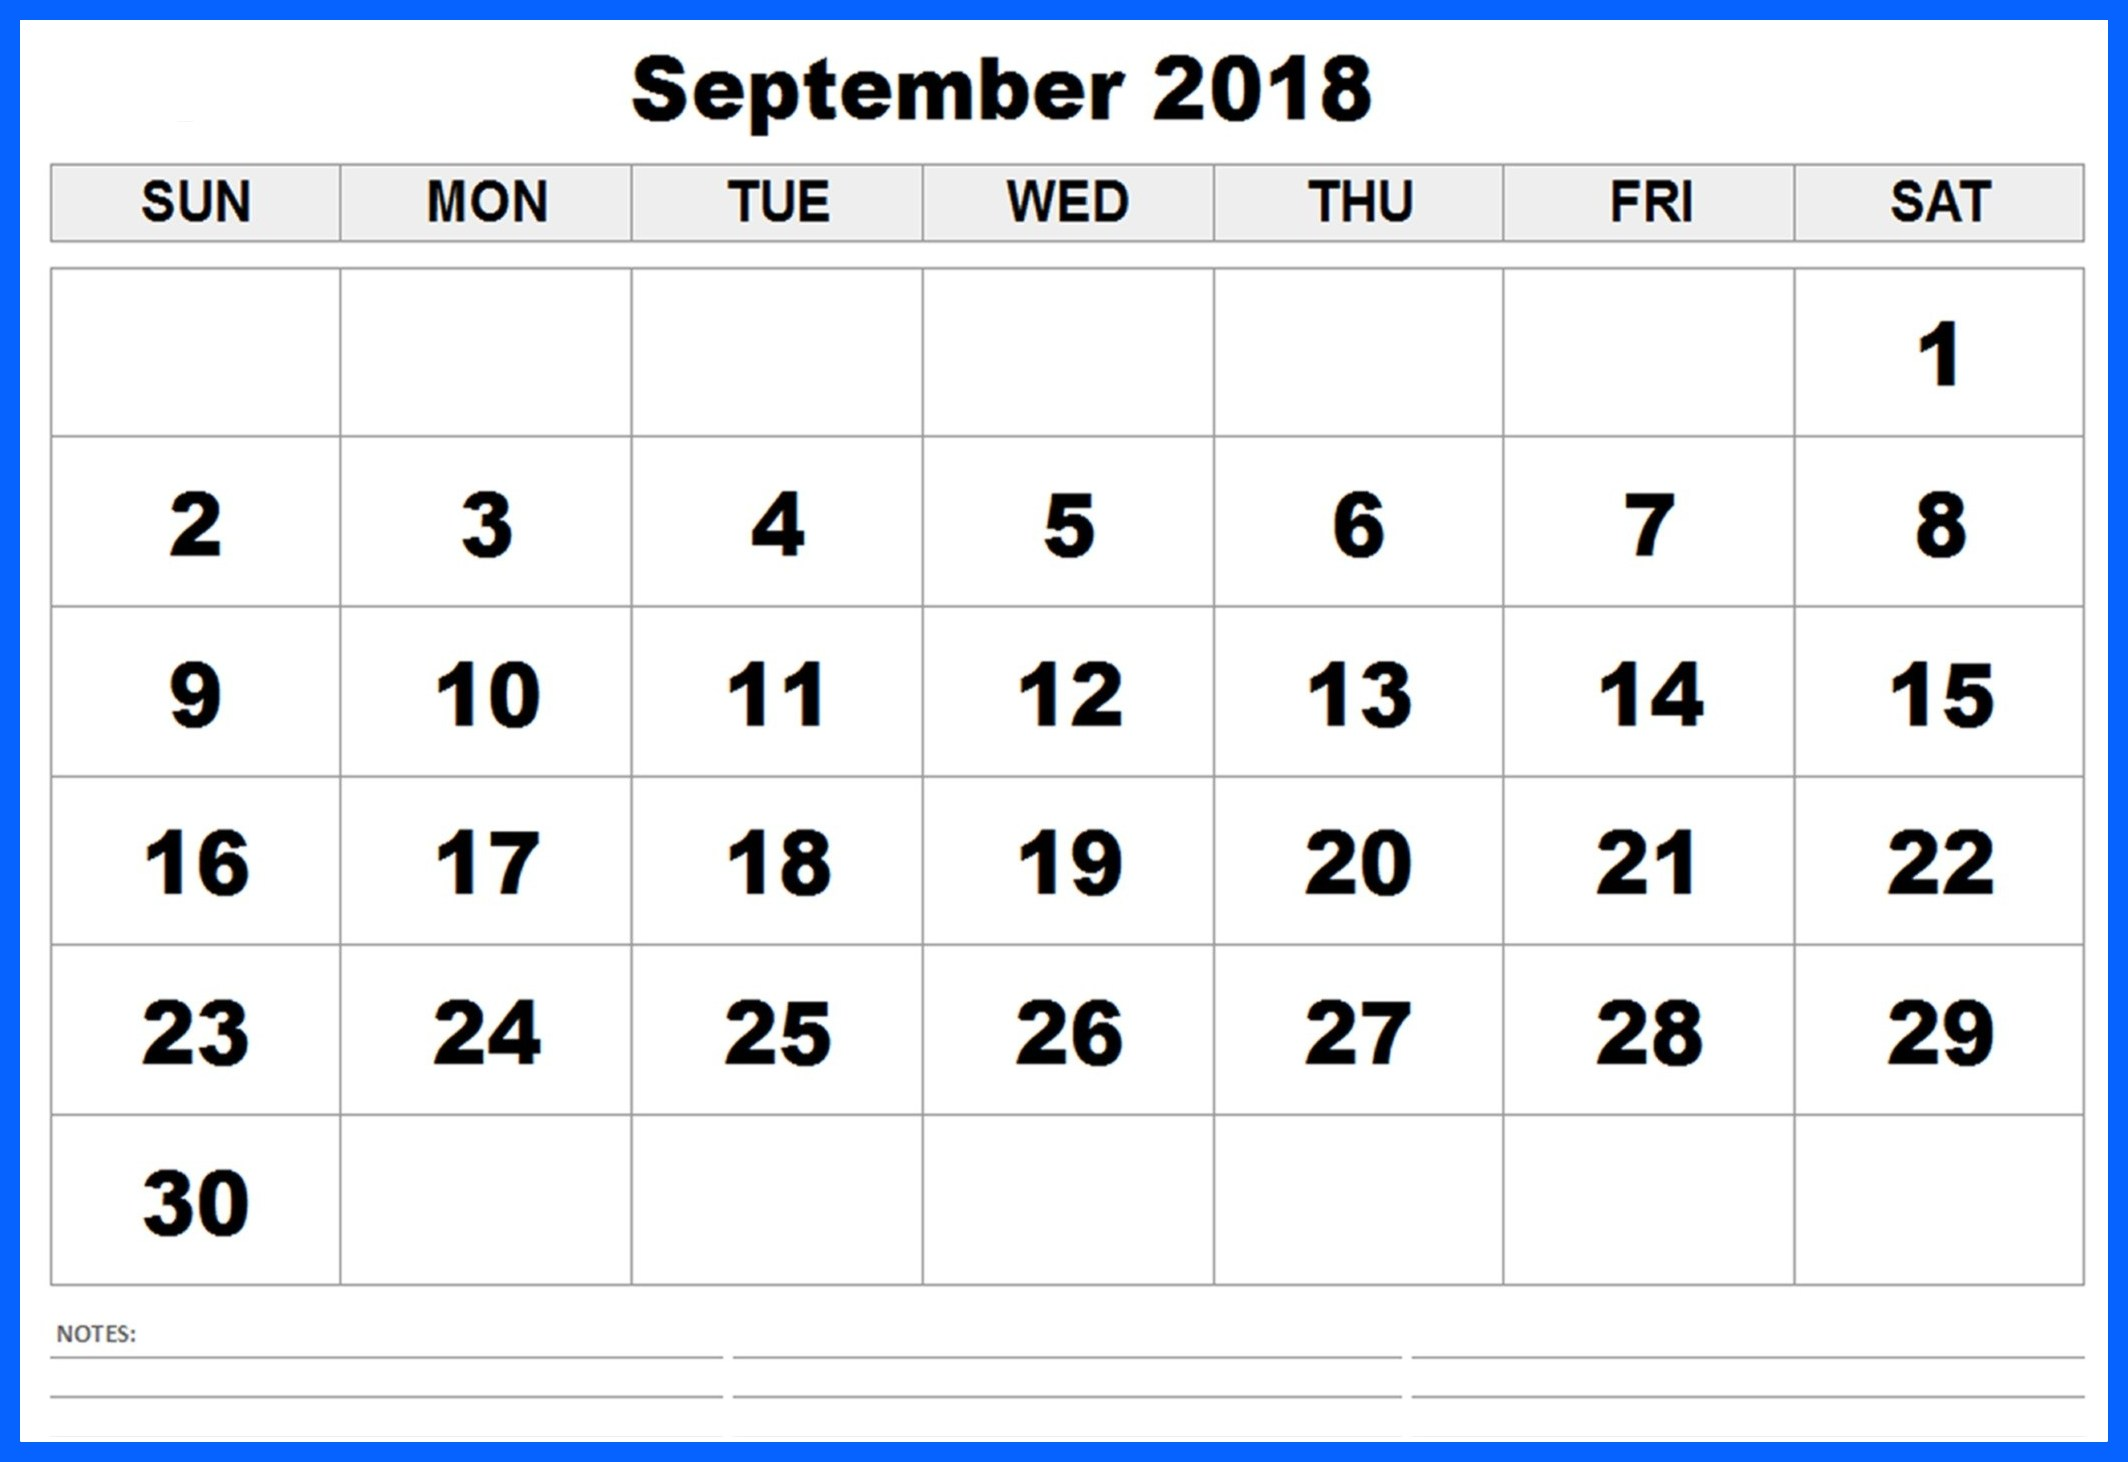 September 2018 Calendar with Holidays Template